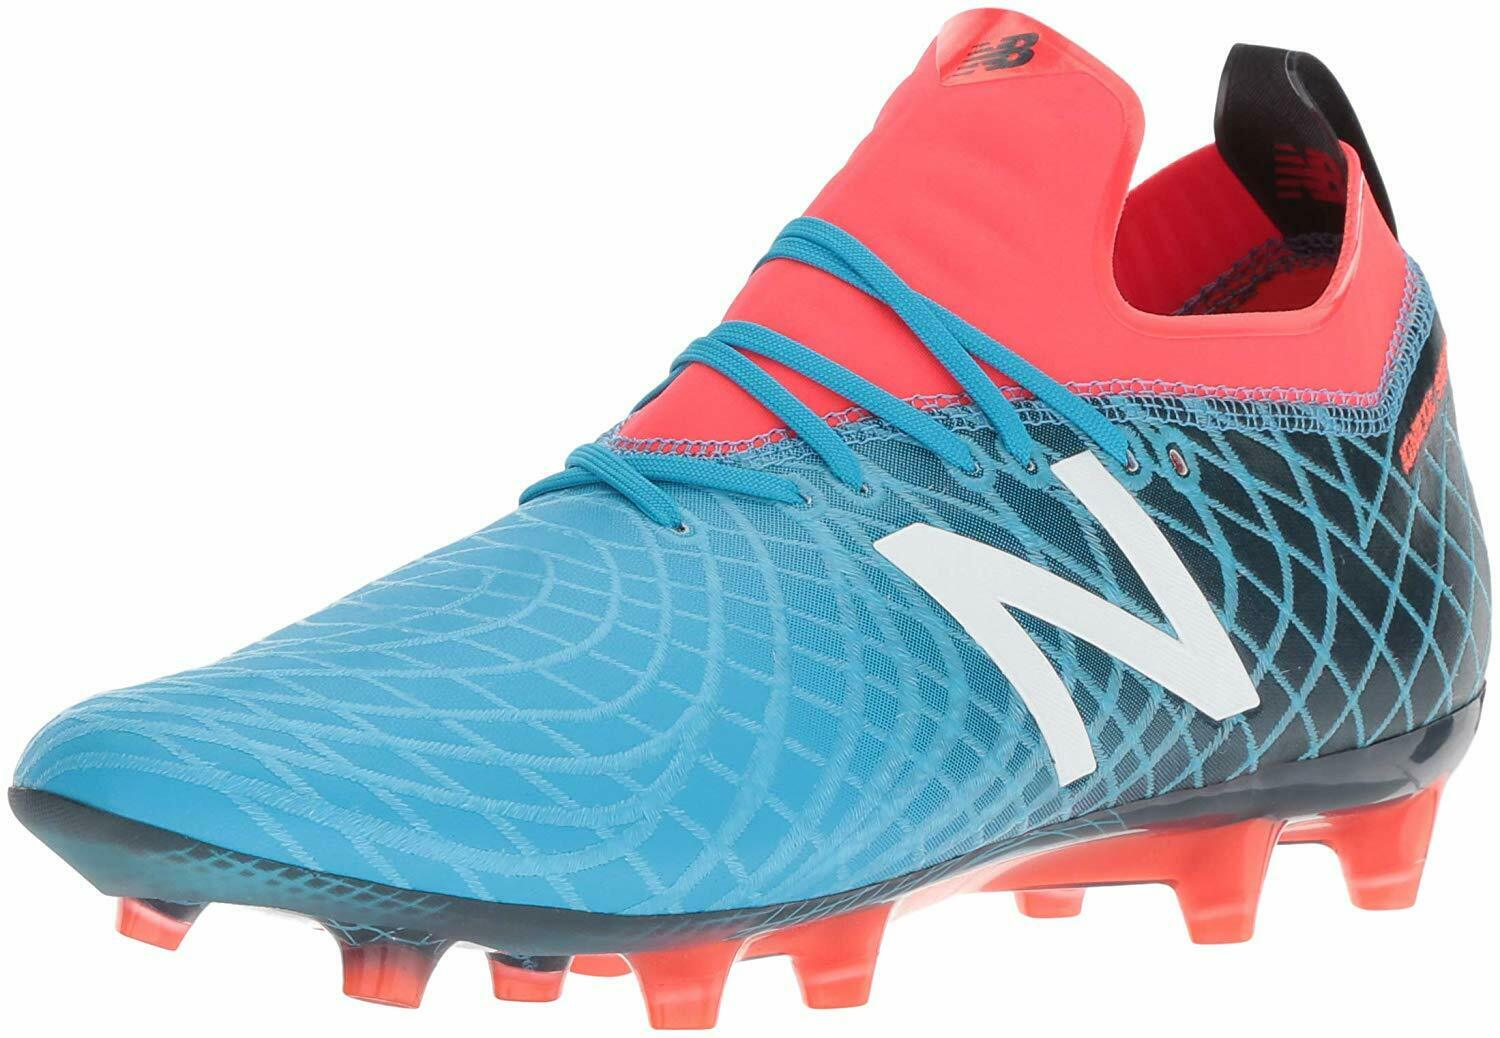 New Balance Mens Tpf V1 Soccer shoes Low Top Lace Up Soccer Sneaker